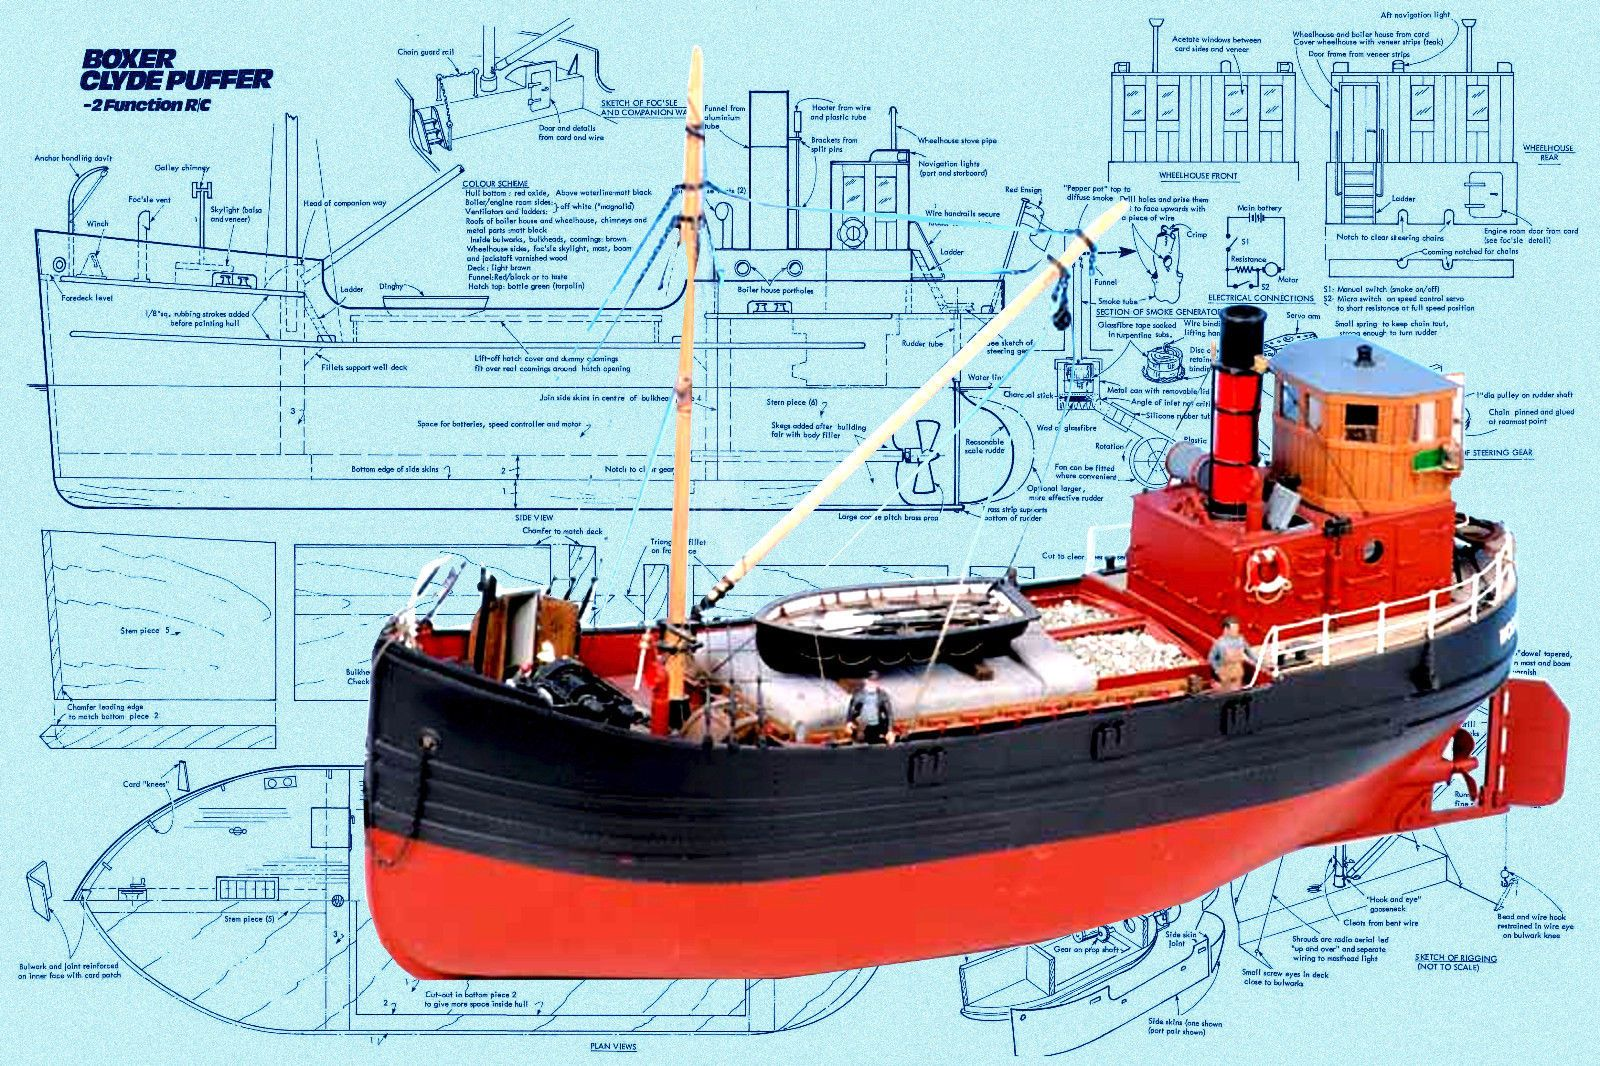 details about new full size printed plans notes semi scale clyde model boat radio control wiring [ 1600 x 1066 Pixel ]